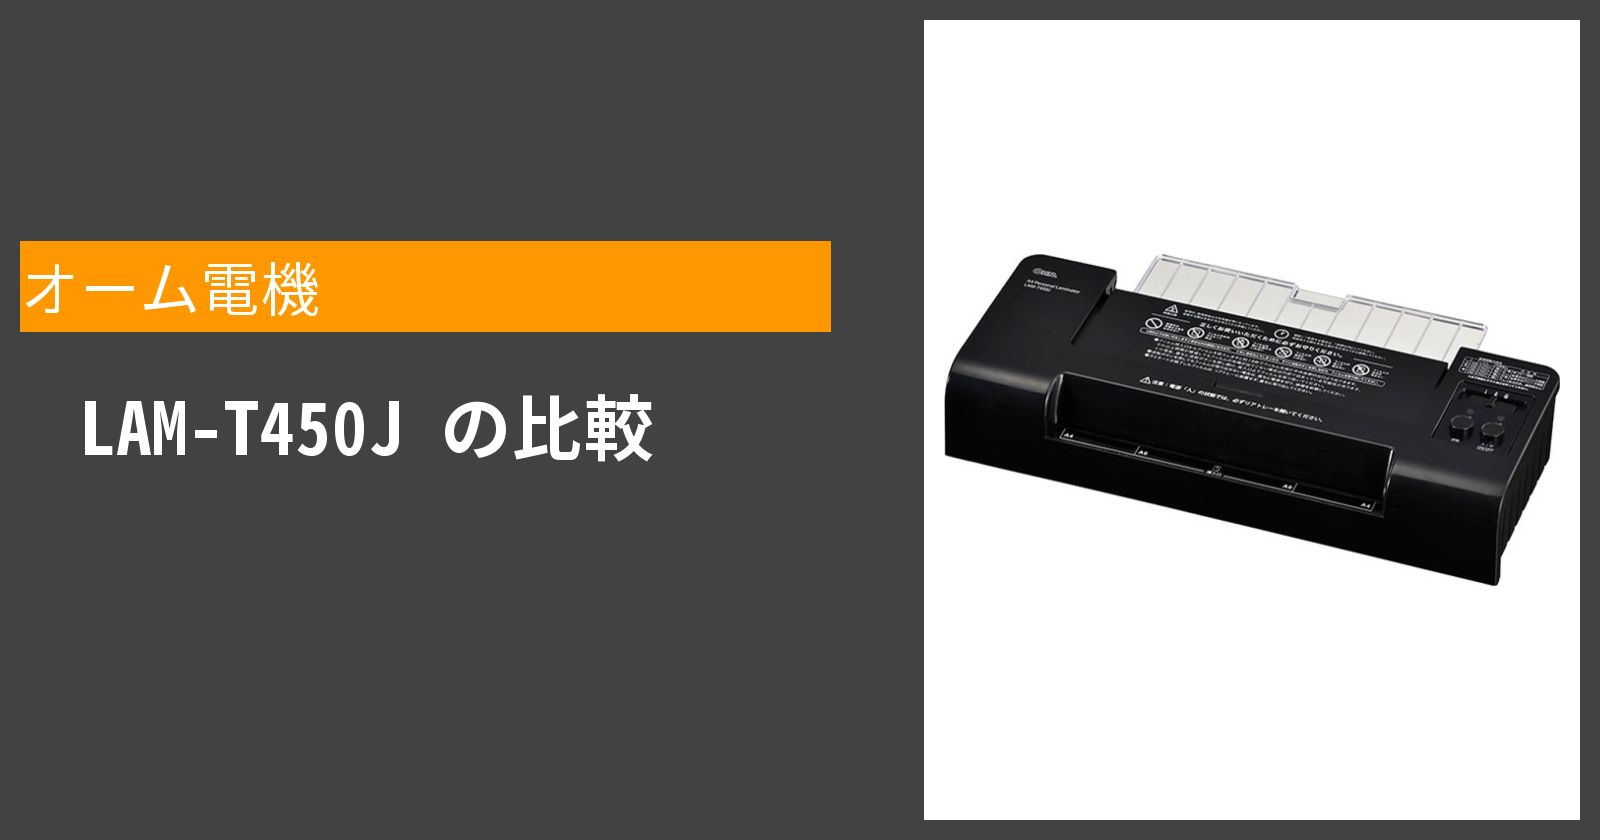 LAM-T450Jを徹底評価